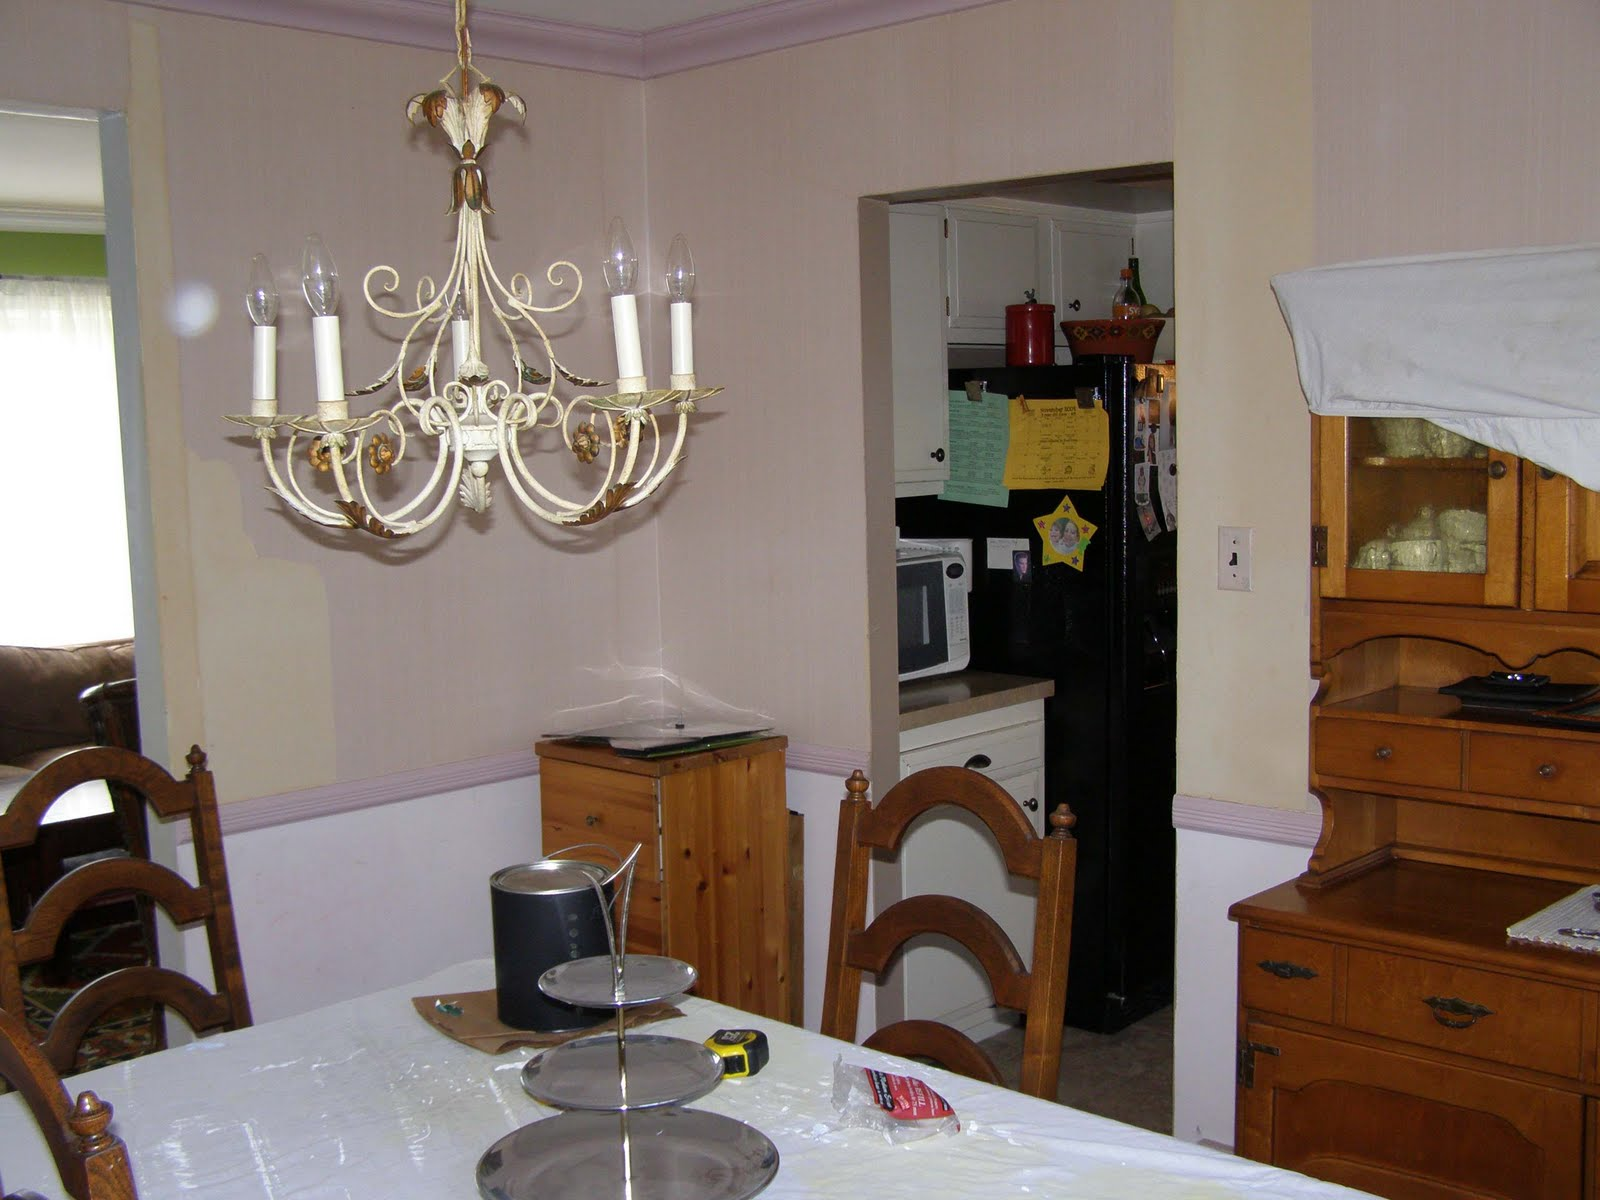 http://3.bp.blogspot.com/_qY-z7UwQVnA/SxXP9Pk7e0I/AAAAAAAABbI/xWZOZ4eJps0/s1600/dining+room+Kit+view+before.jpg